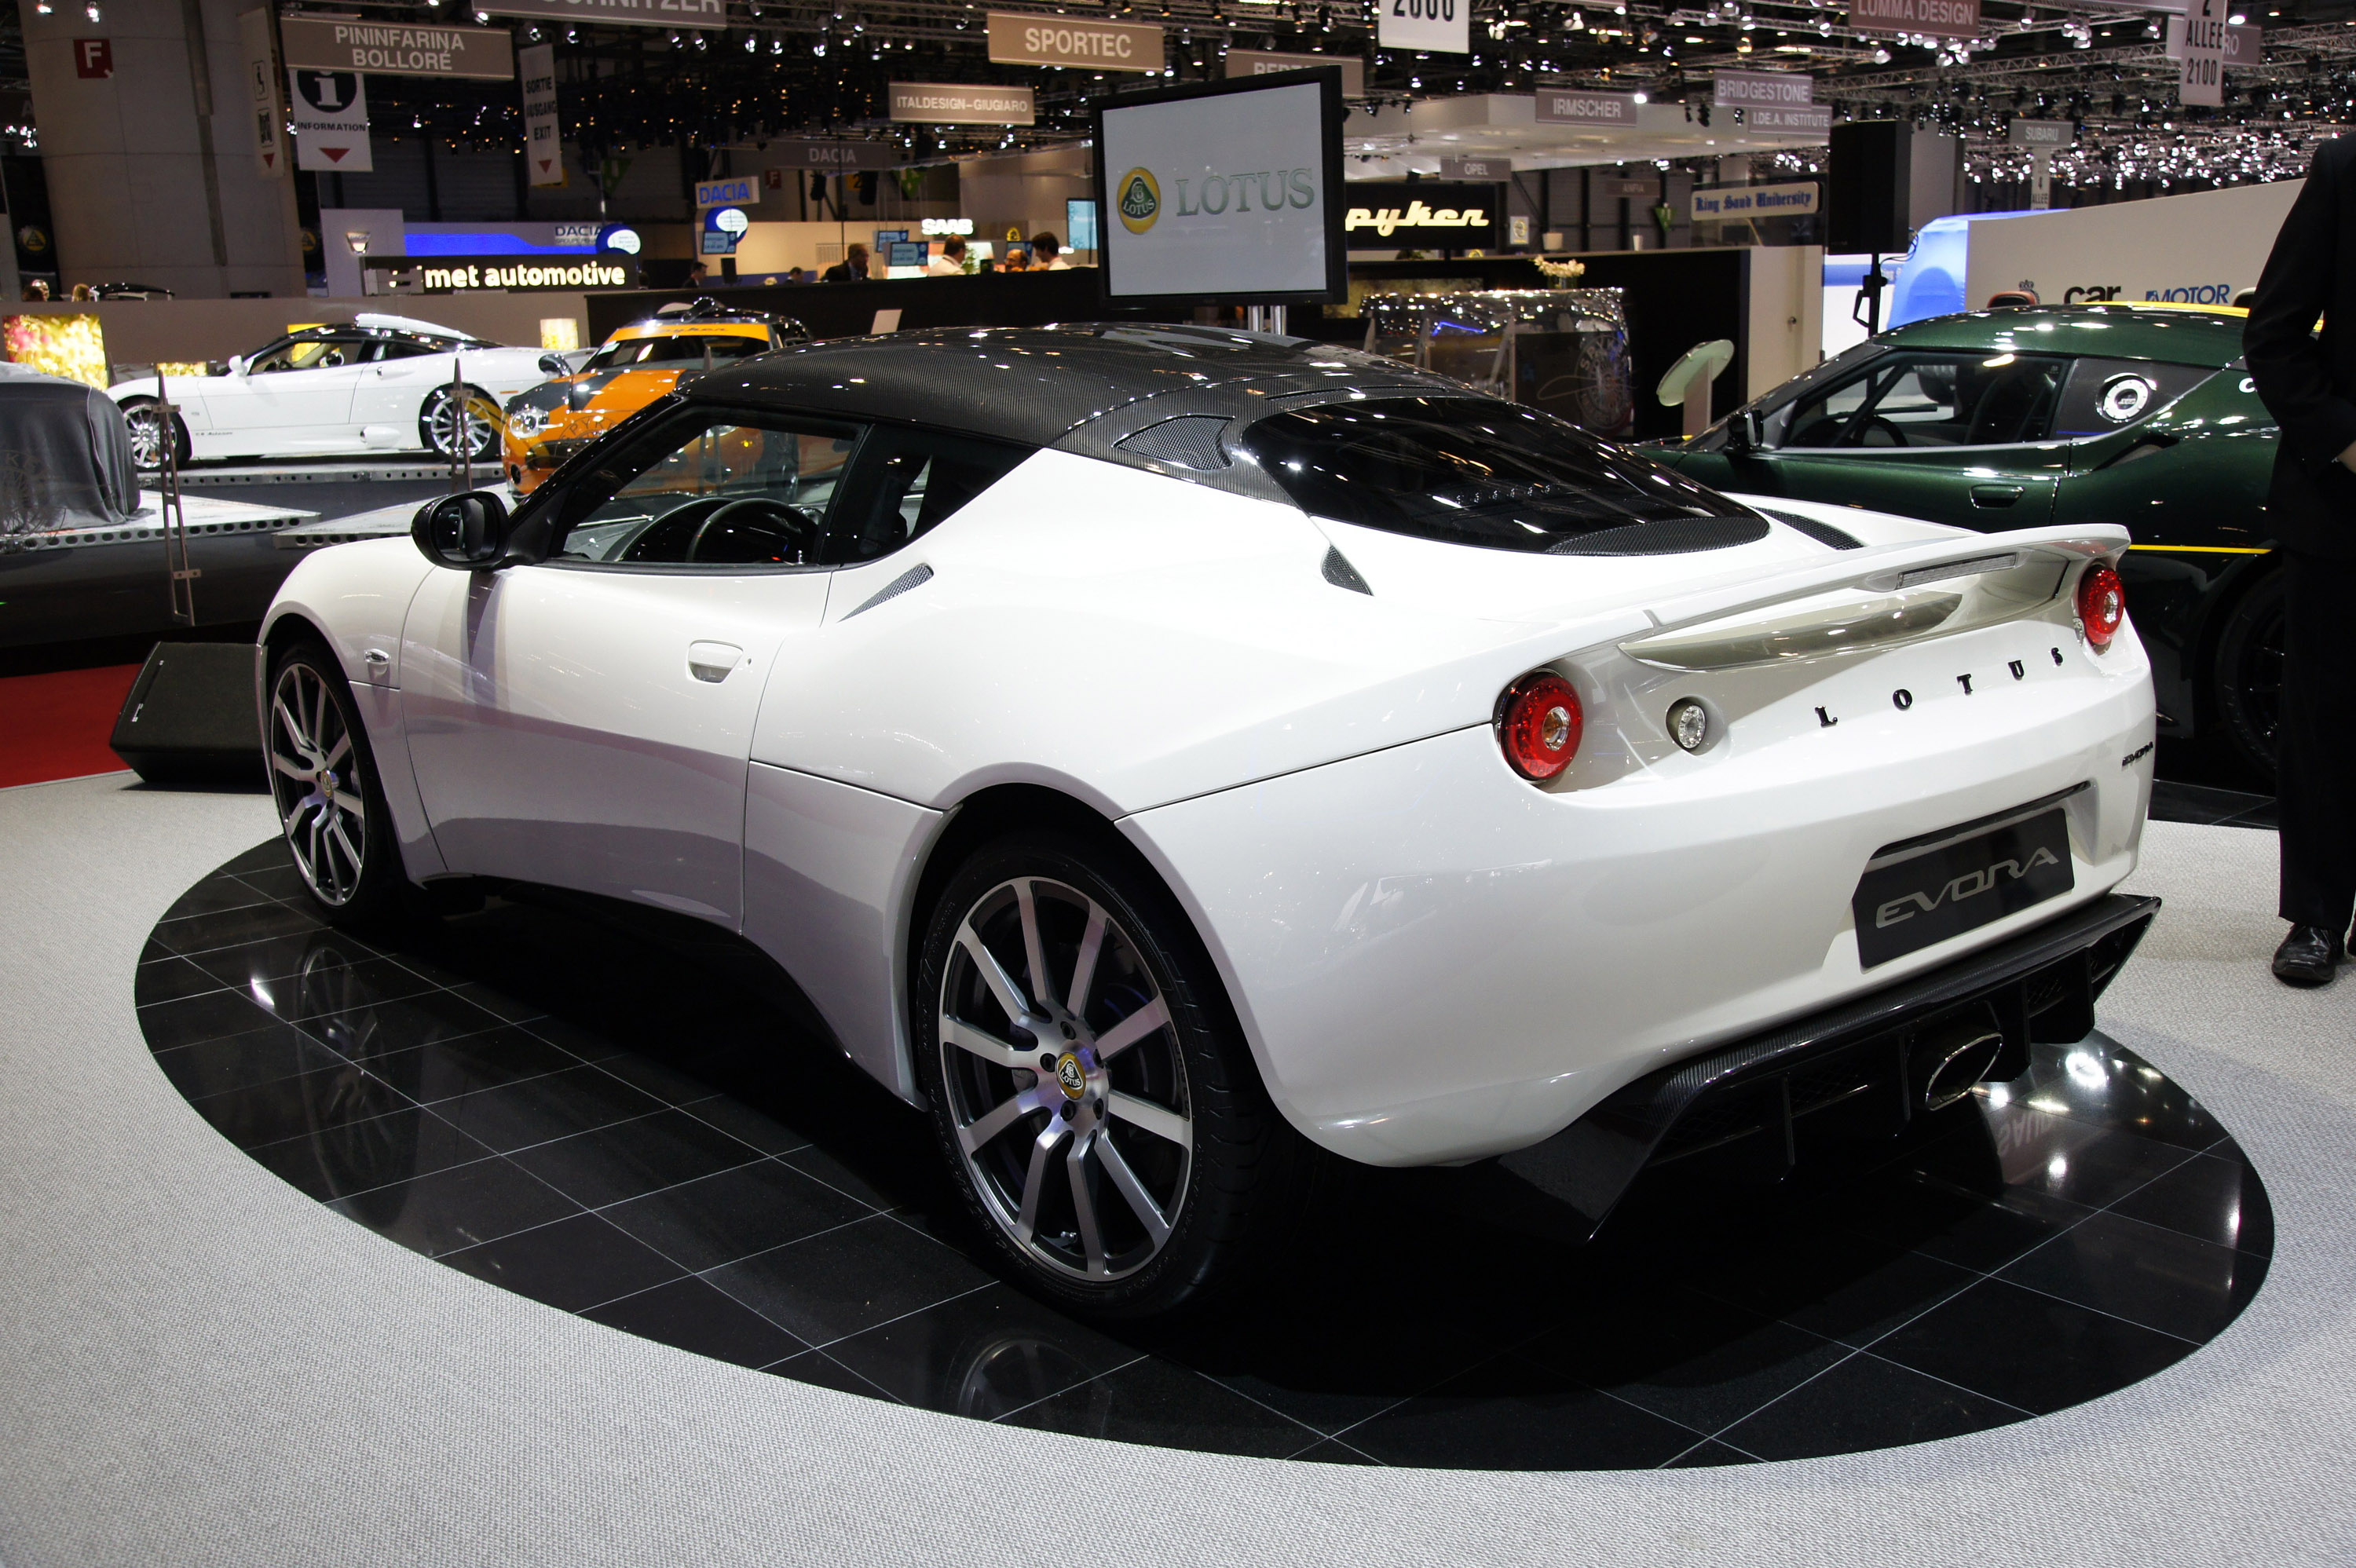 Lotus Evora Carbon Concept Officially Showcased